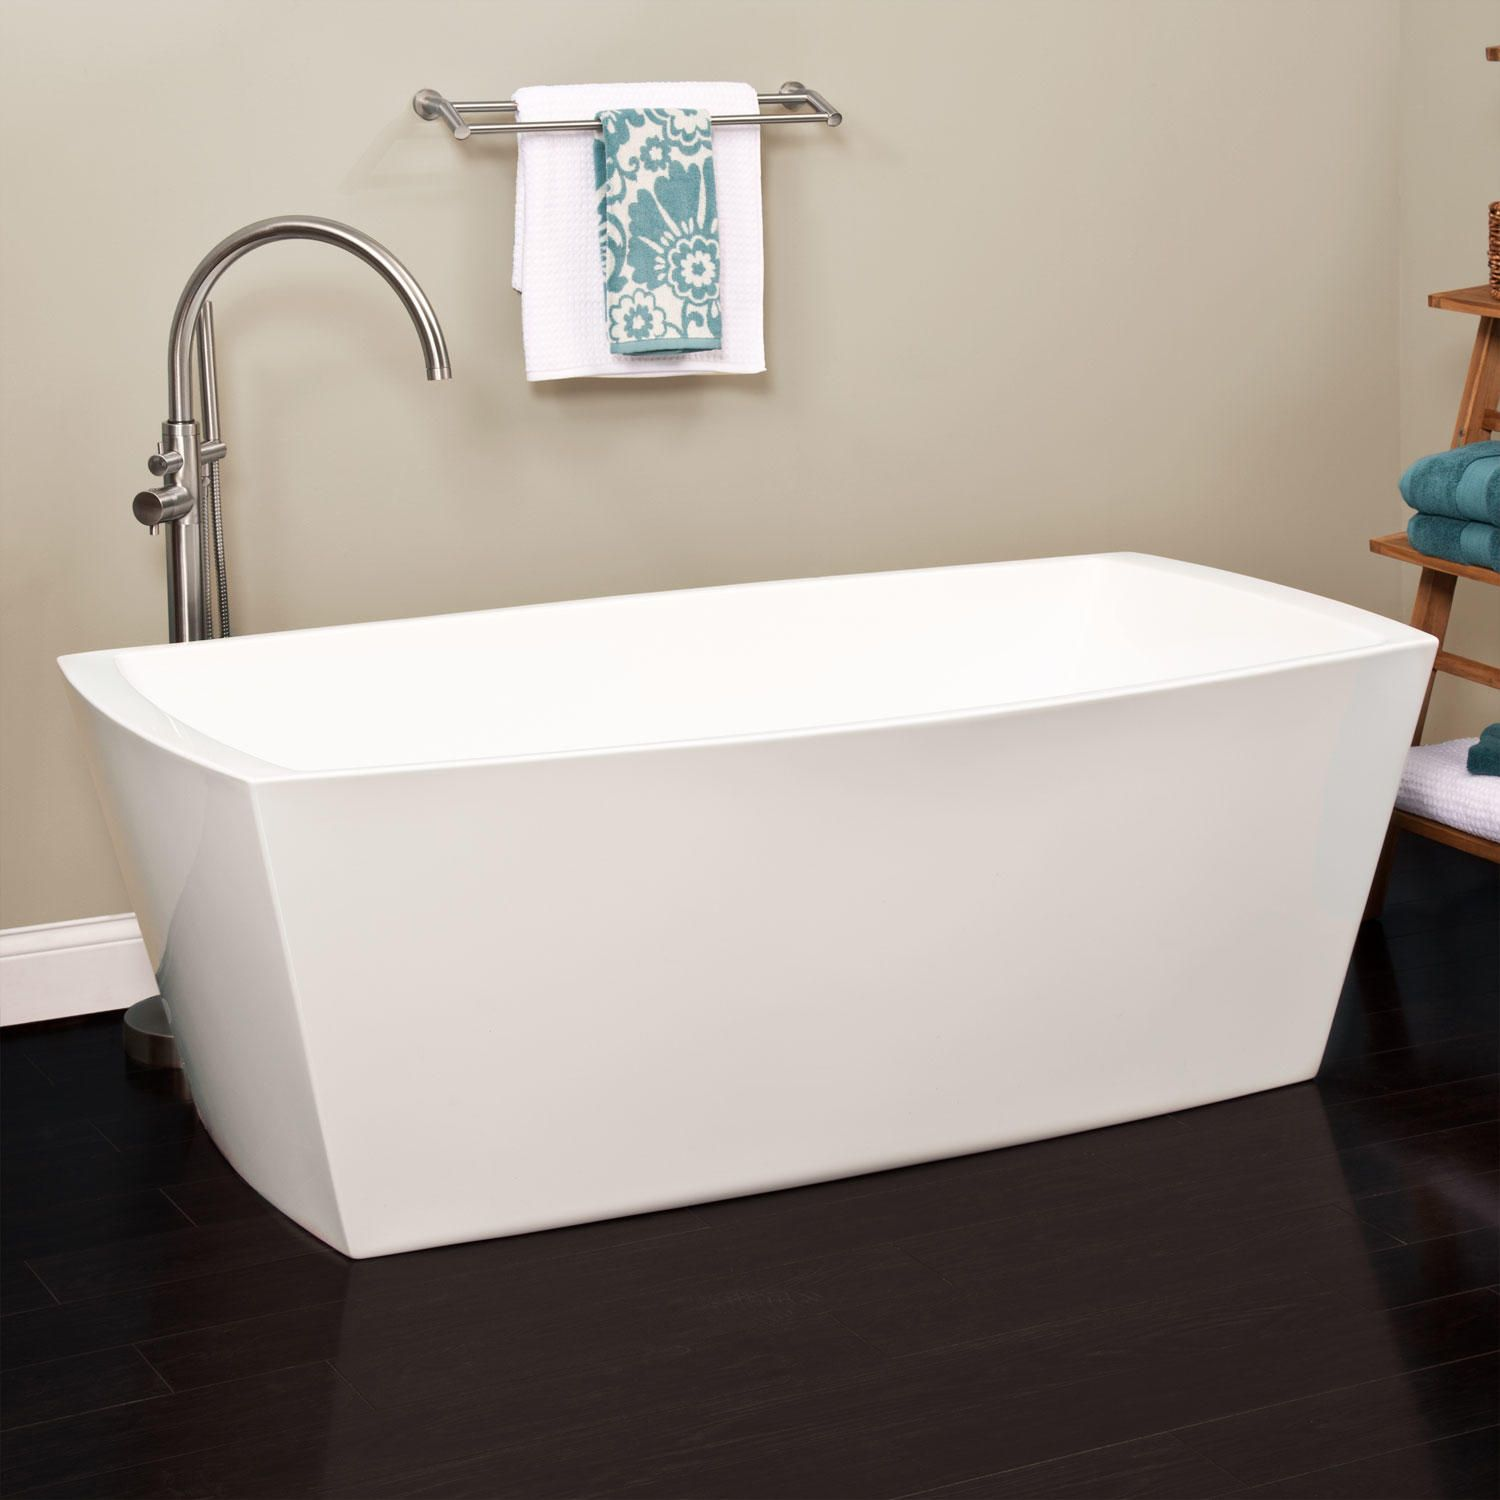 freestanding tub with faucet holes. 59  Avie Acrylic Freestanding Tub No Faucet Holes tub Tubs and Acrylics